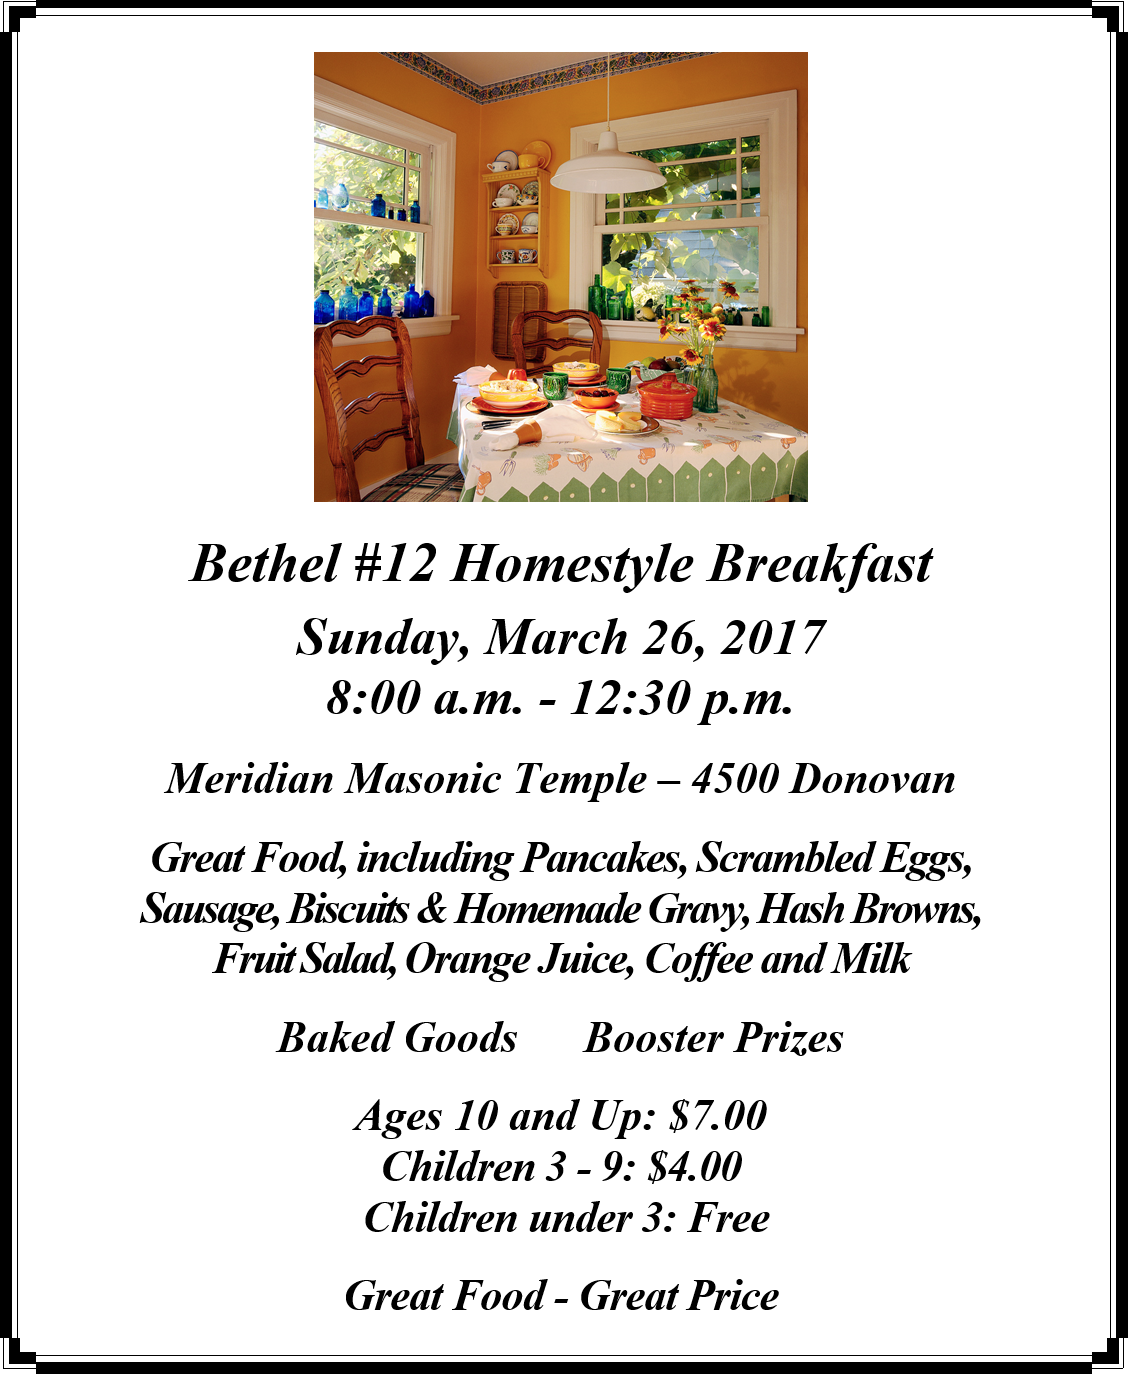 Bethel #12 Homestyle Breakfast @ Meridian Masonic Temple | St. Louis | Missouri | United States